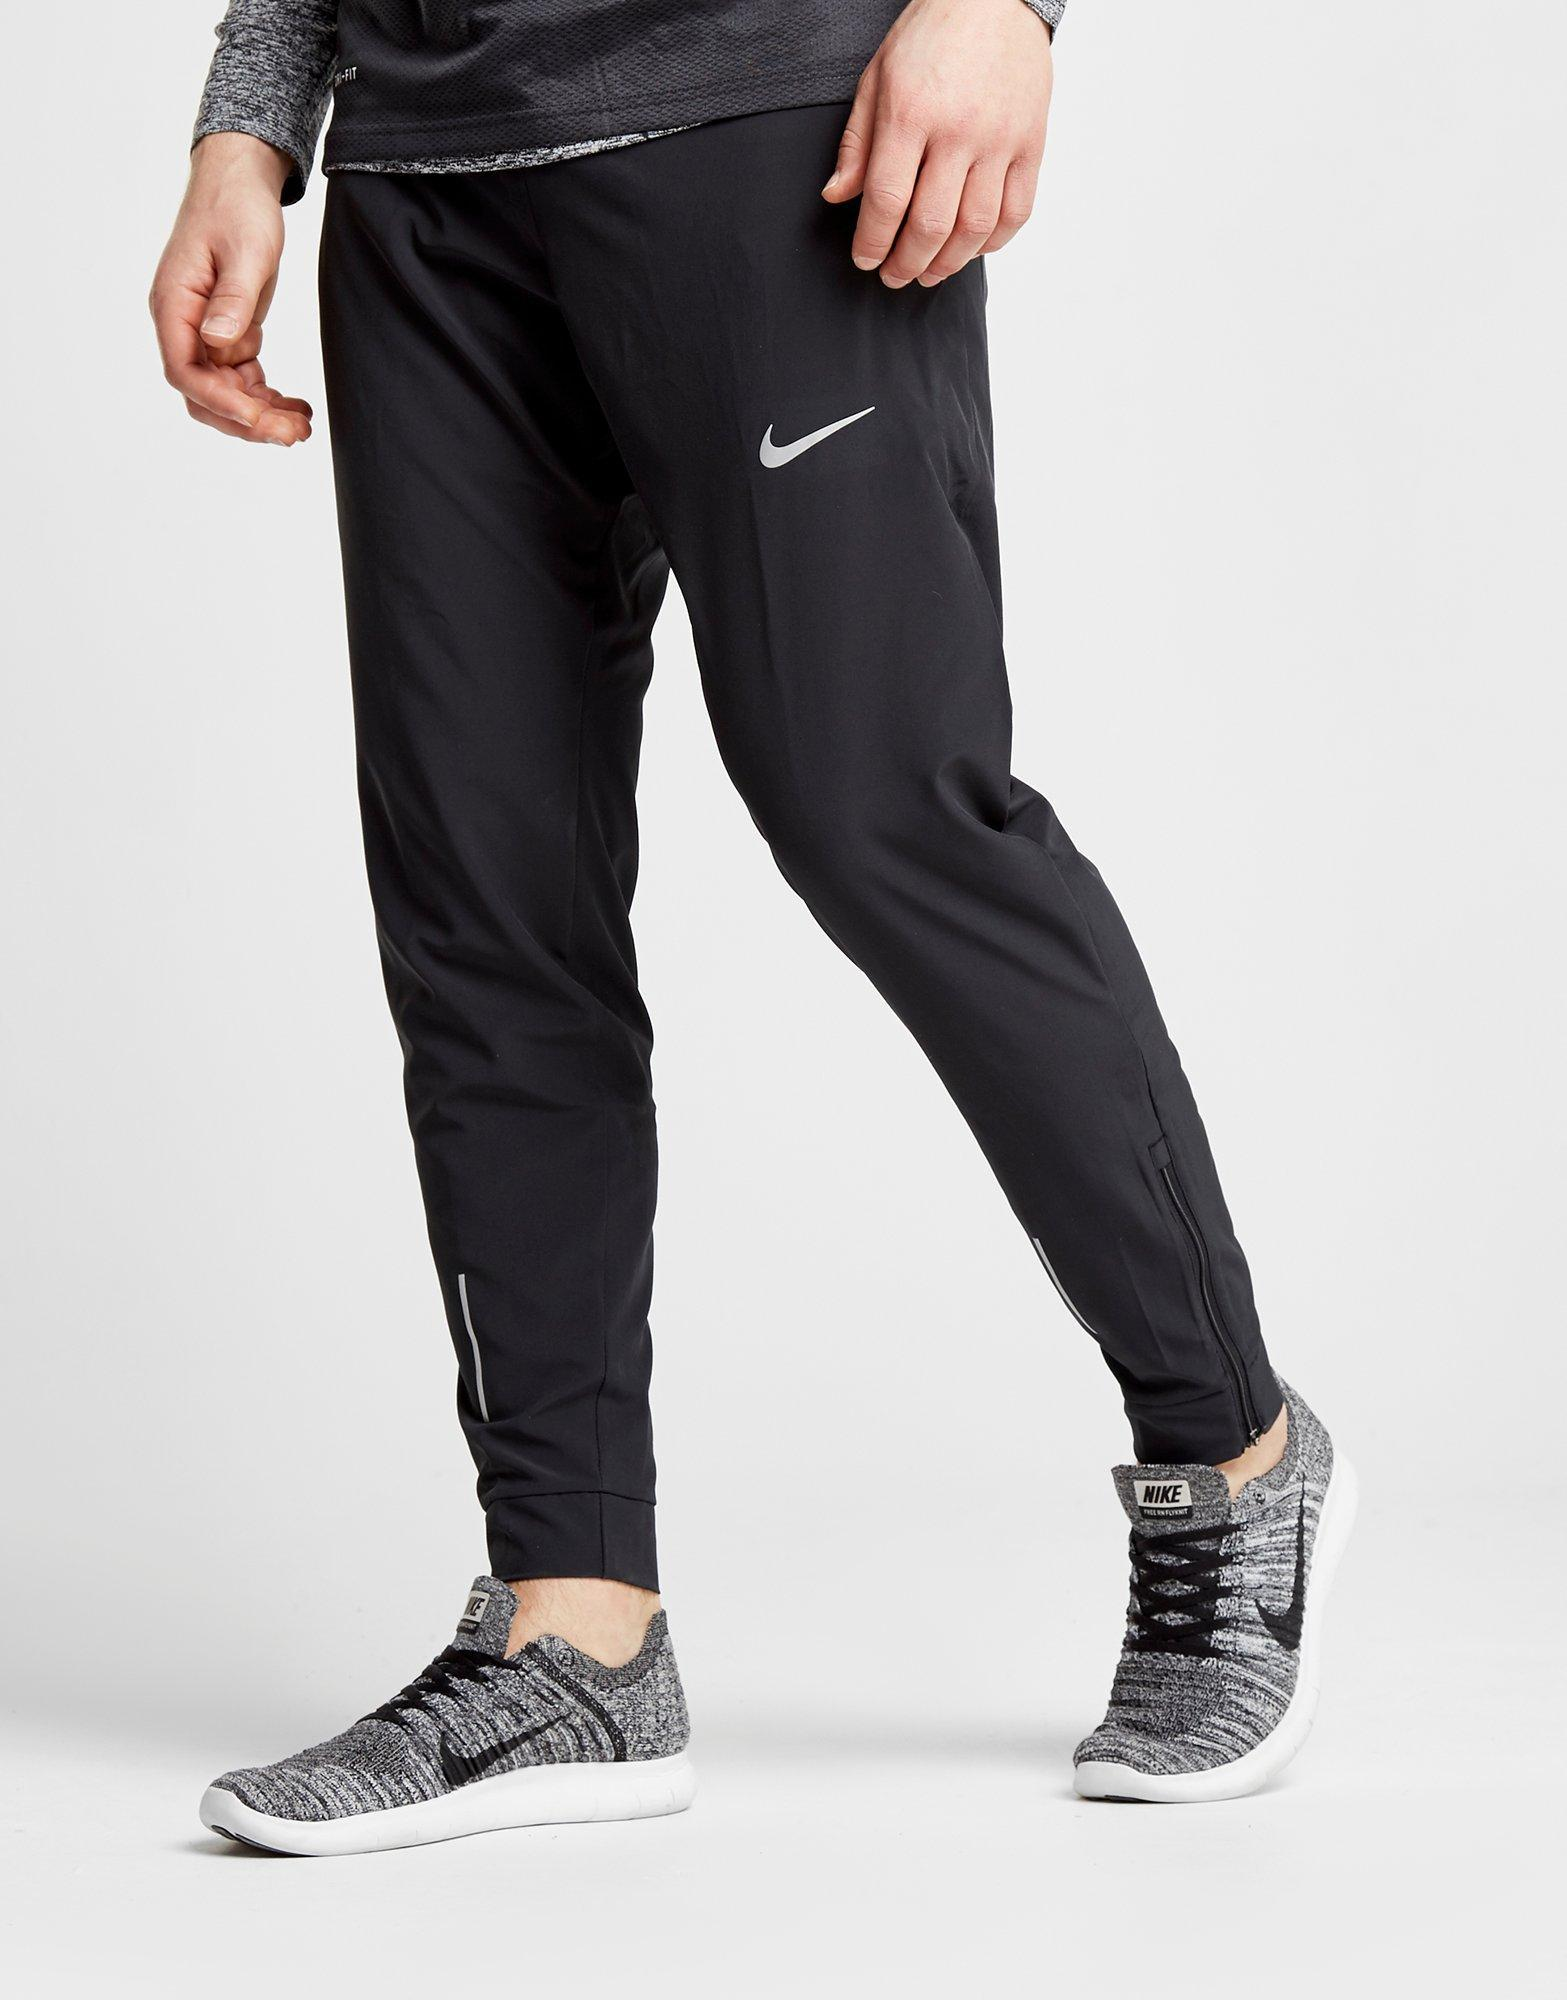 db1cbbc170 Nike Black Flexible Woven Track Pants for men